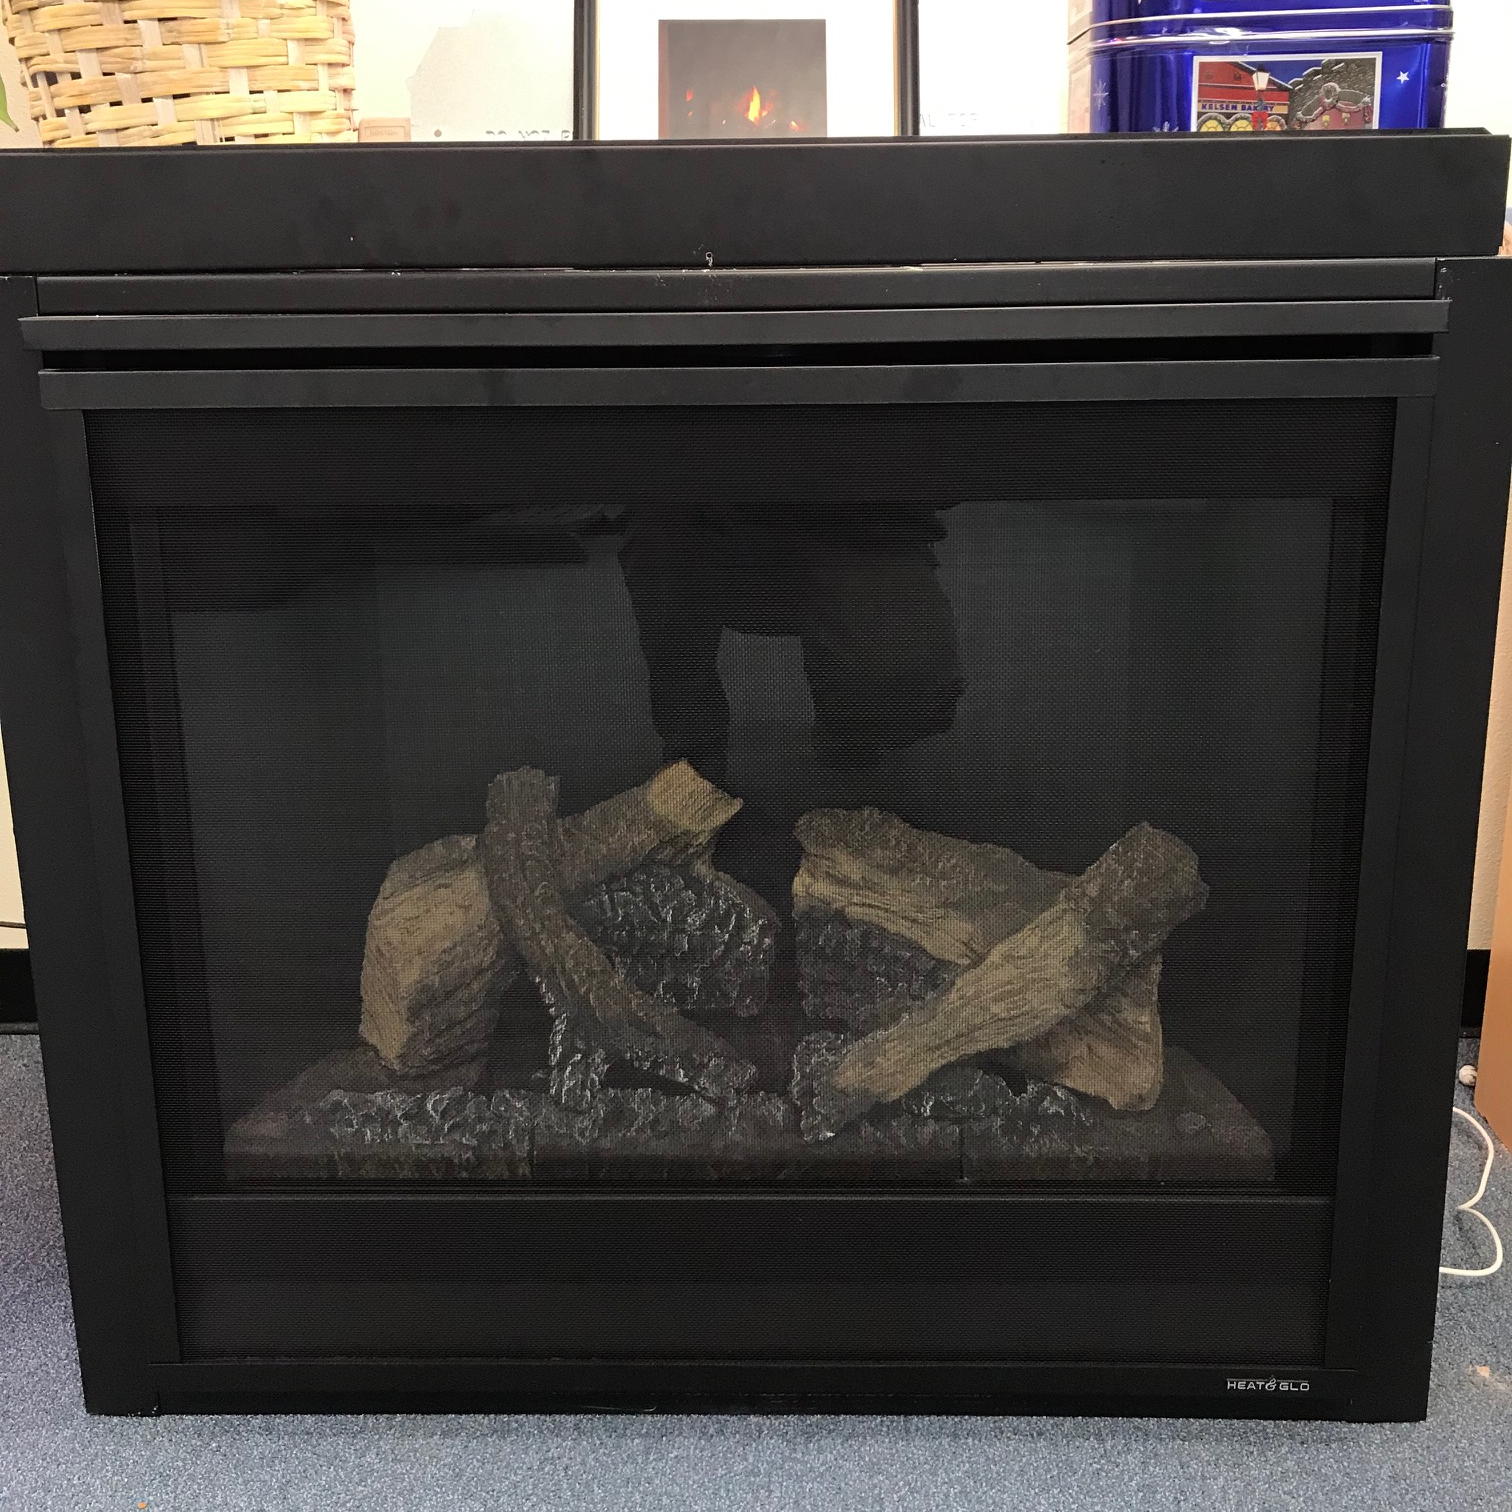 Heat N Glo Slimline 7 Fireplace (Display Model)